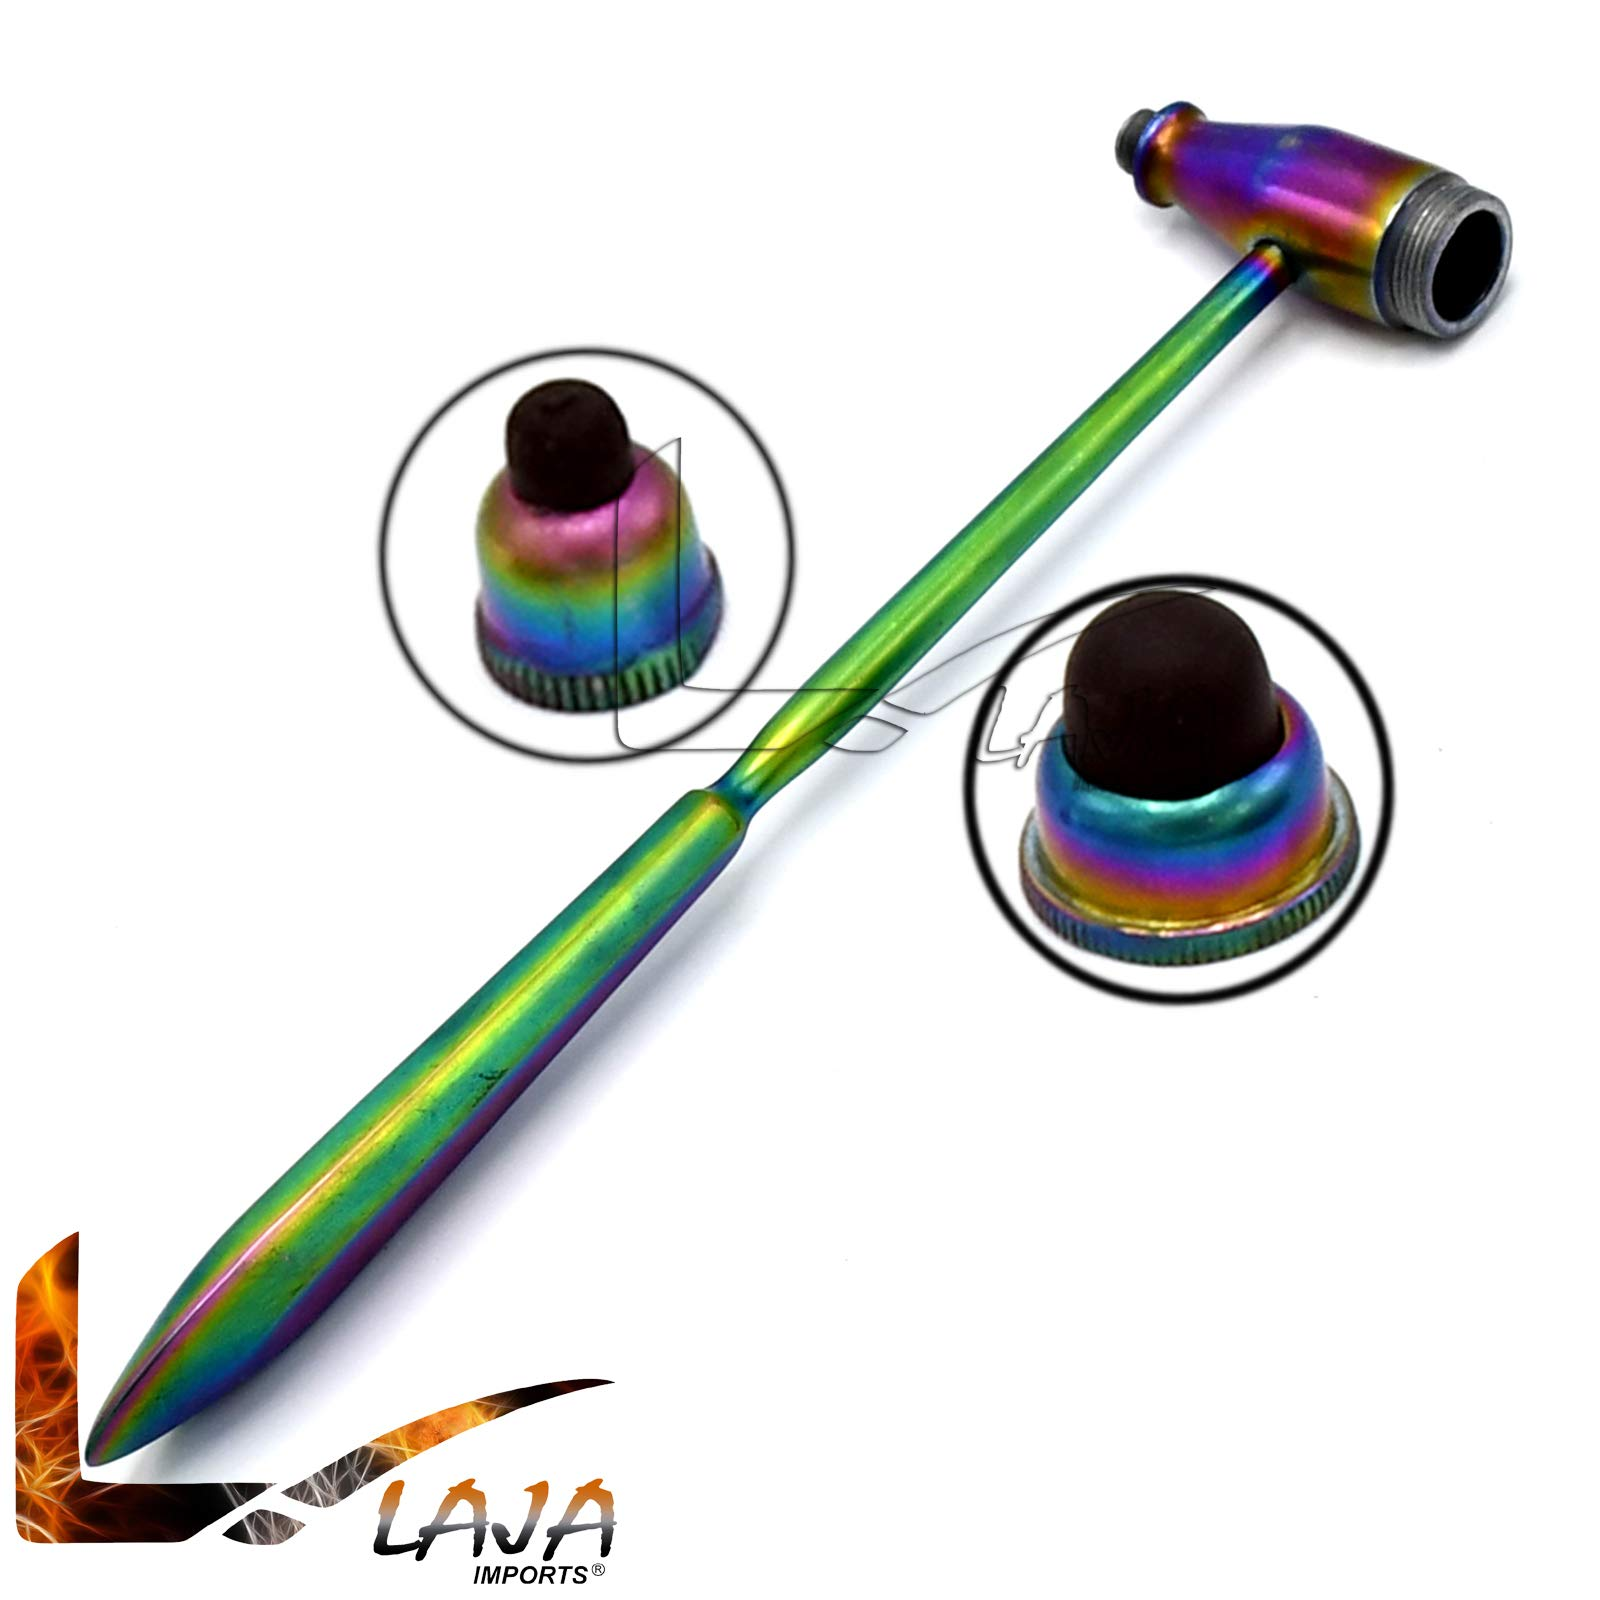 LAJA Imports Tromner Percussion Hammer Chiropractic Physical Therapy - Troemner Hammer (Multi Color)